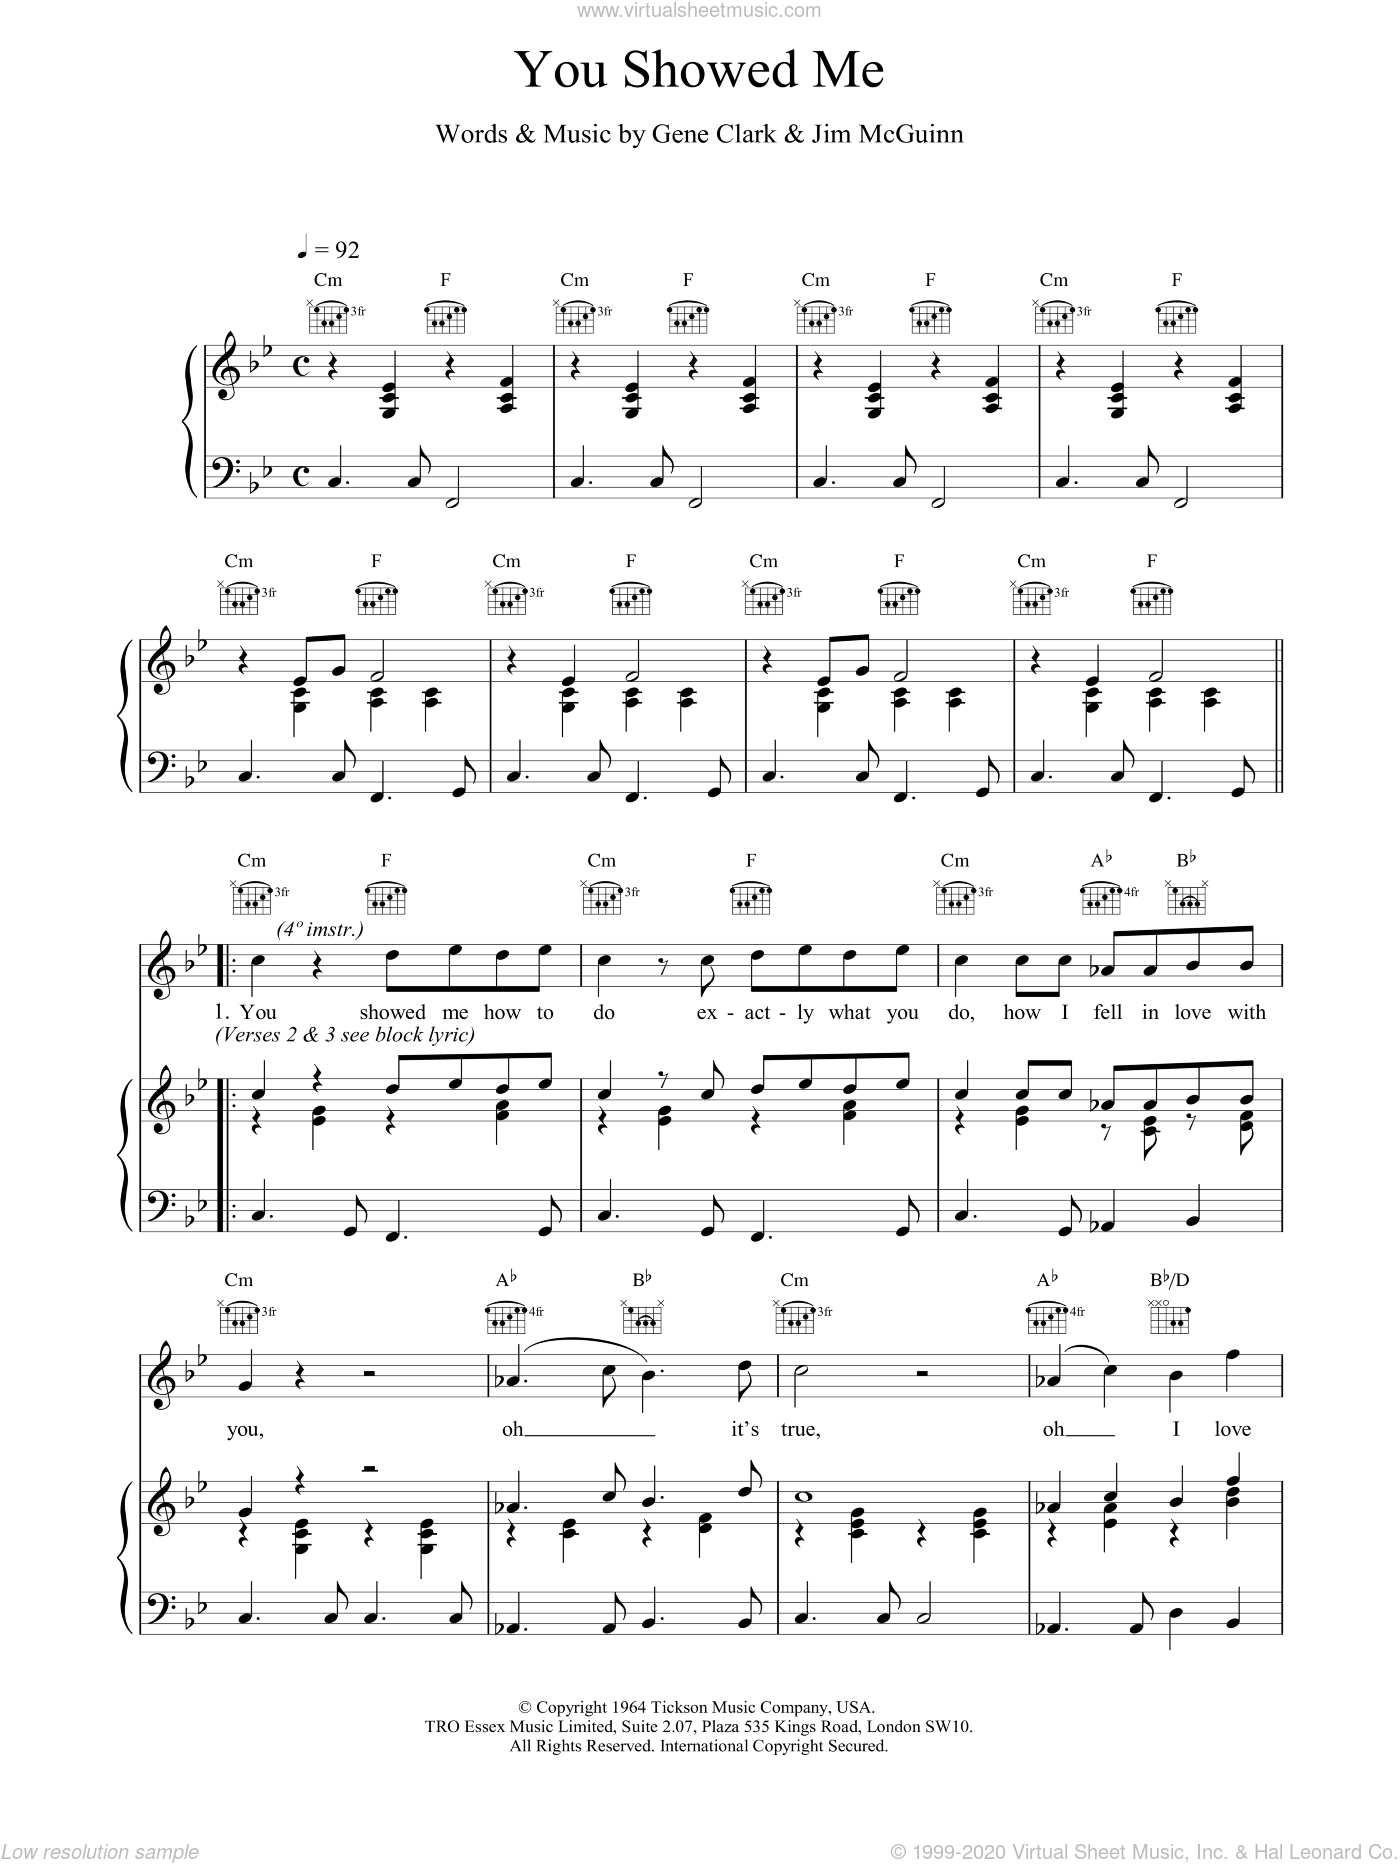 You Showed Me sheet music for voice, piano or guitar by The Lightning Seeds. Score Image Preview.